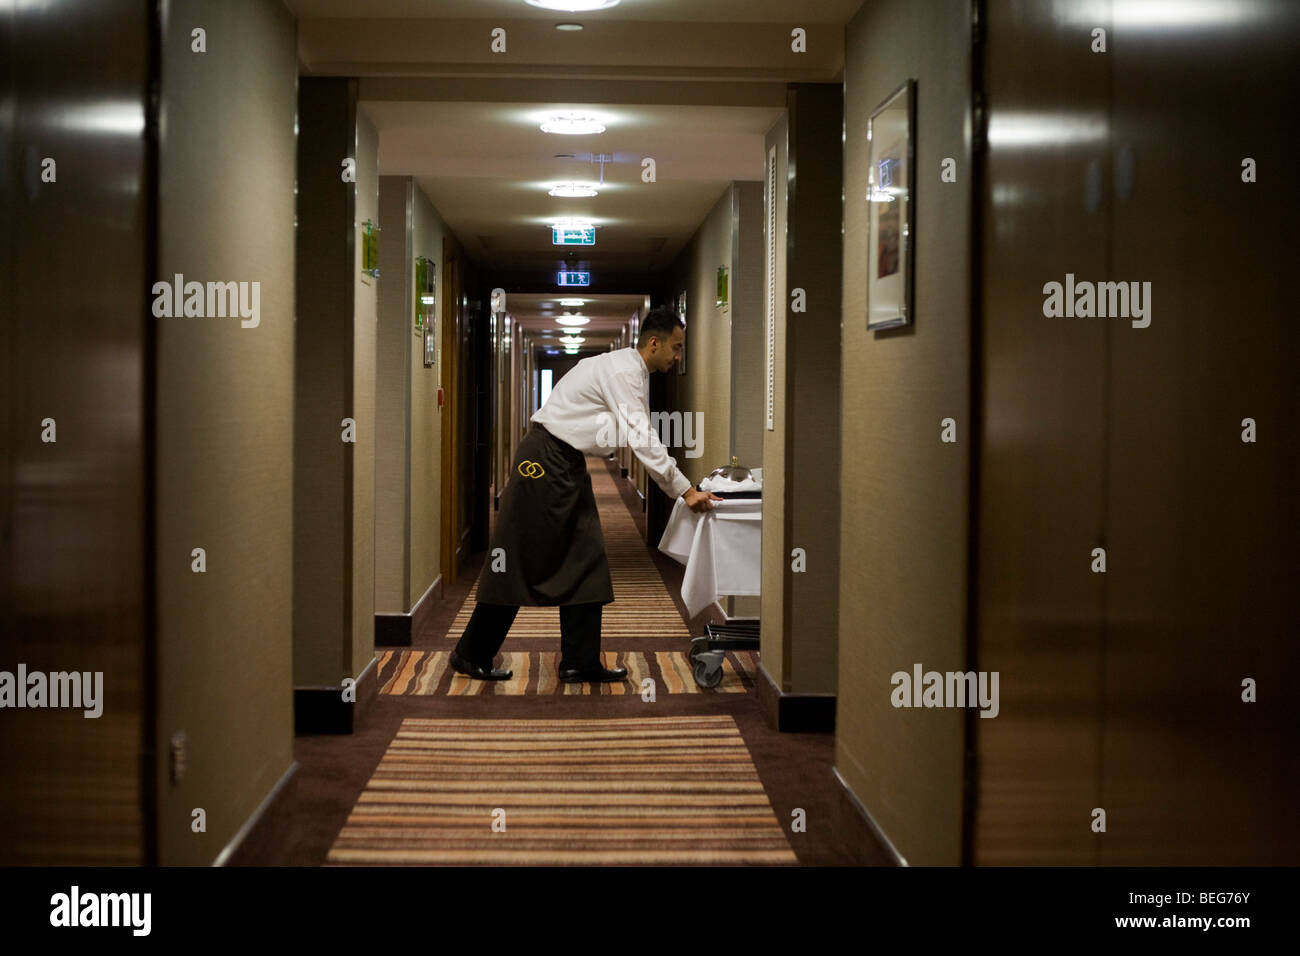 A hotel waiter delivers a meal ordered from room service in the Heathrow Airport Sofitel, attached to Terminal 5. - Stock Image